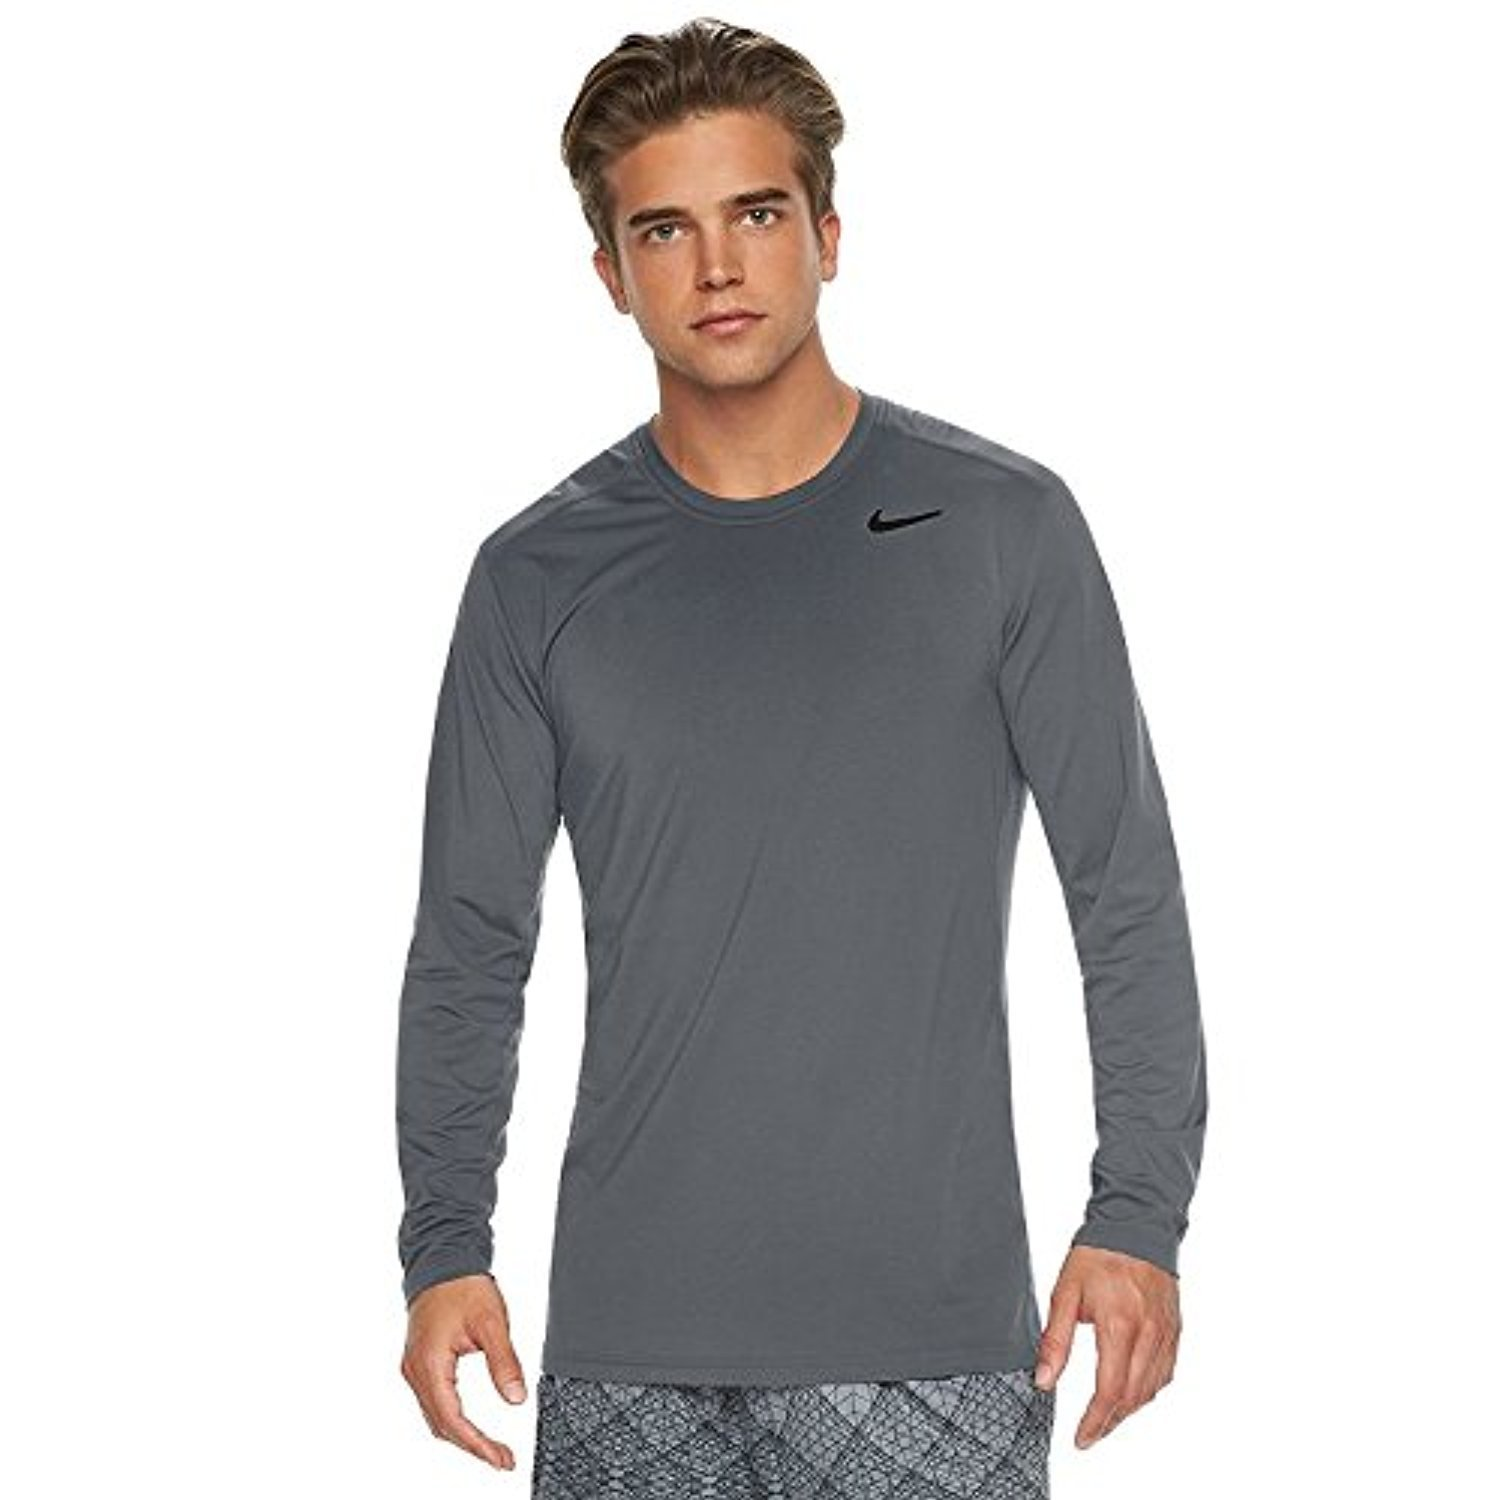 b4eb56bcb353 Nike Dry fabric with Dri-FIT technology helps you stay dry and comfortable.  Fitted design for comfortable workouts. Seams are rolled forward